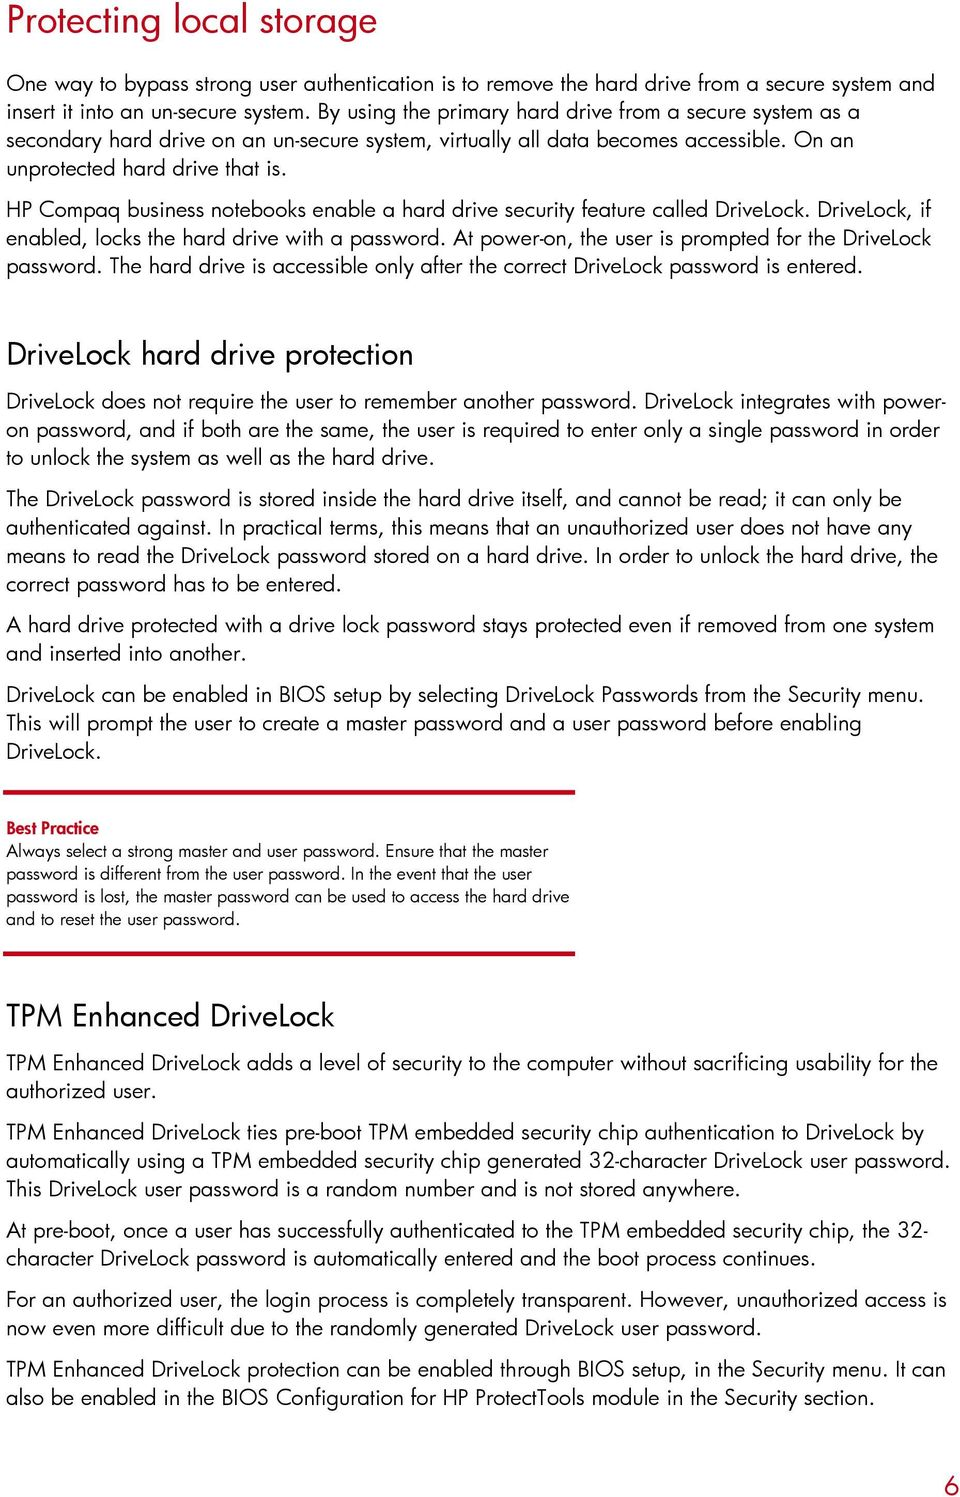 HP Compaq business notebooks enable a hard drive security feature called  DriveLock. DriveLock, if